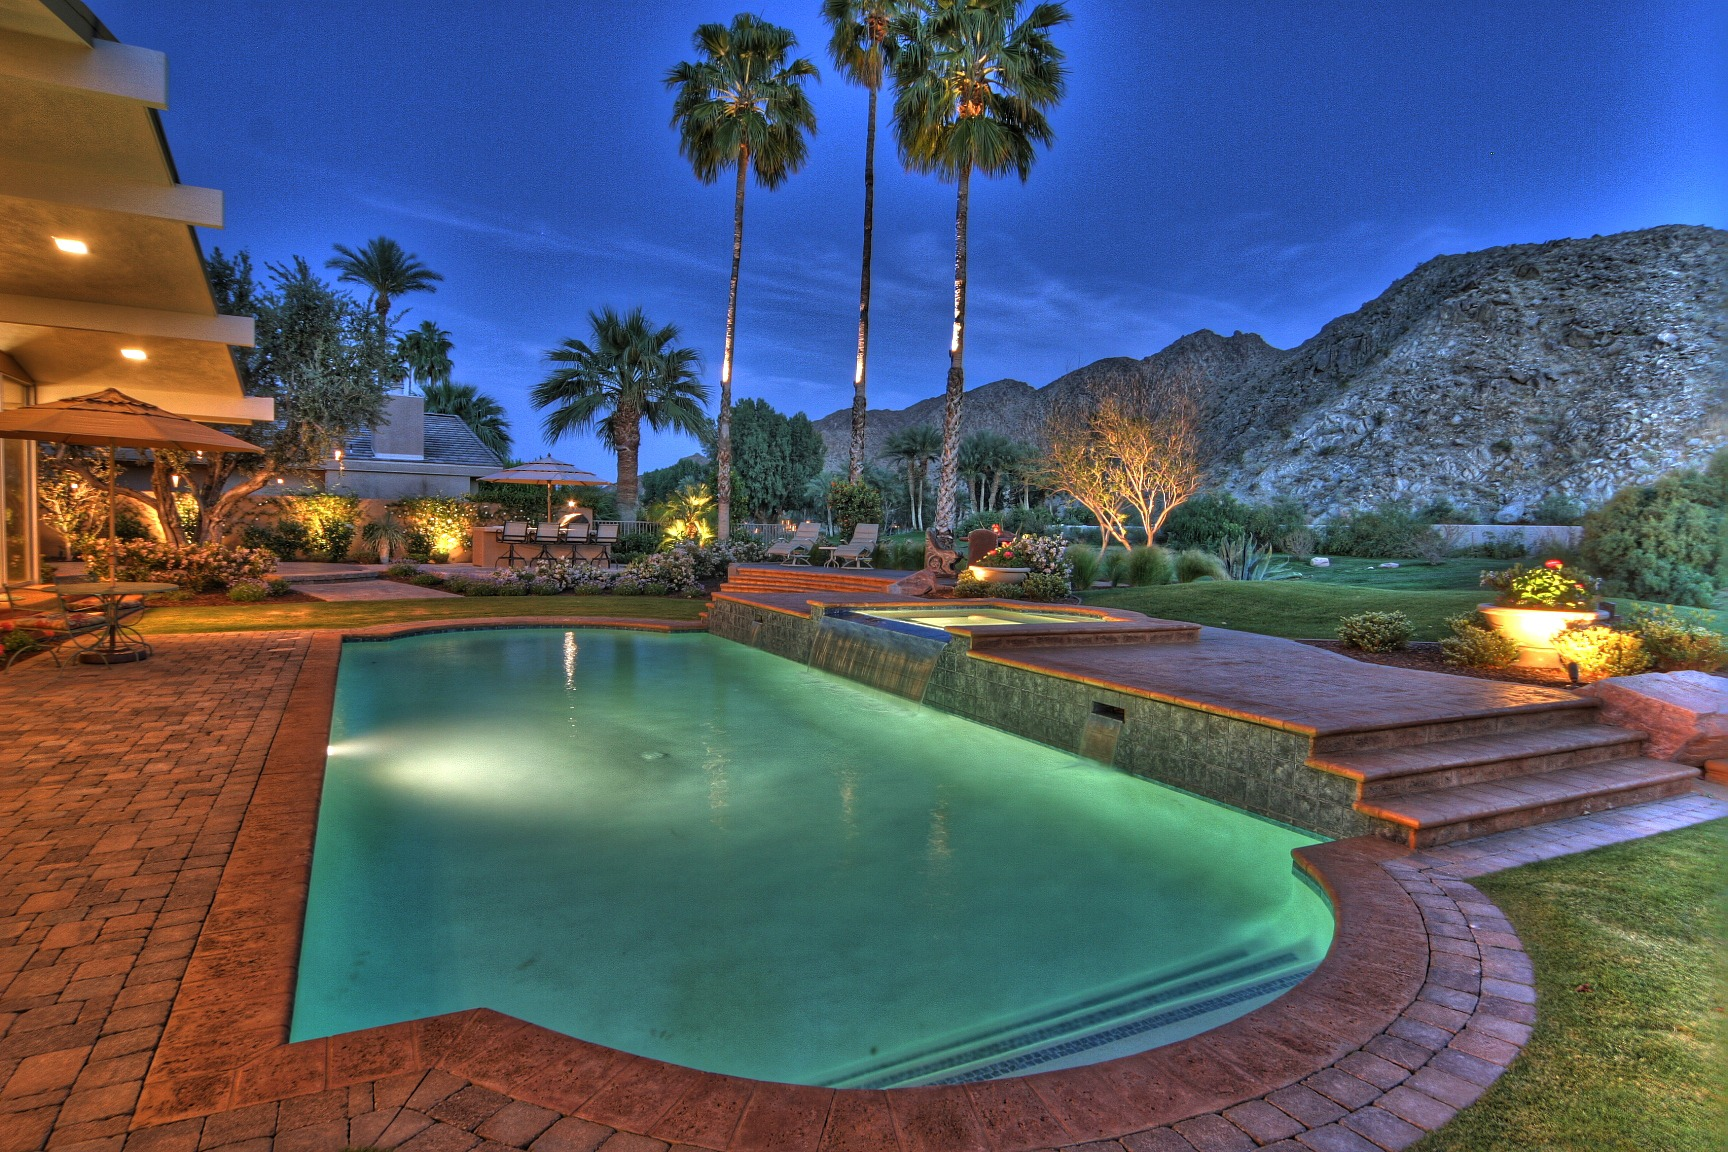 Palm Springs Real Estate Gets Huge Boost From Clooney  Pitt And Upcoming Palm Springs